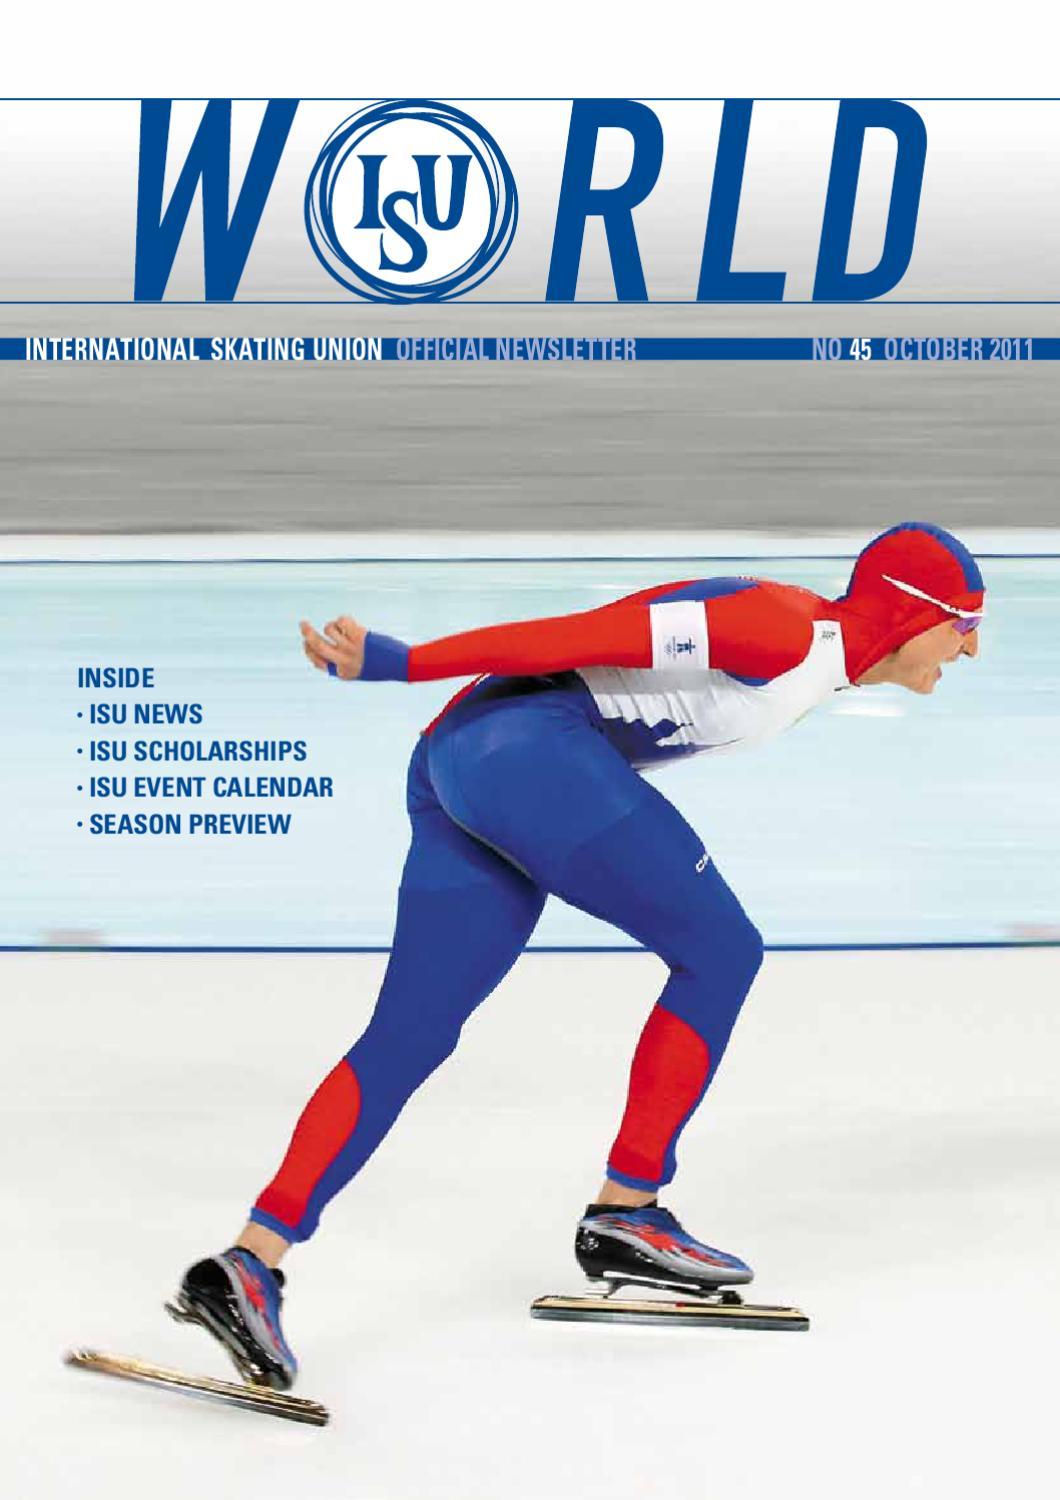 Isu World No45 October 2011 By International Skating Union Issuu